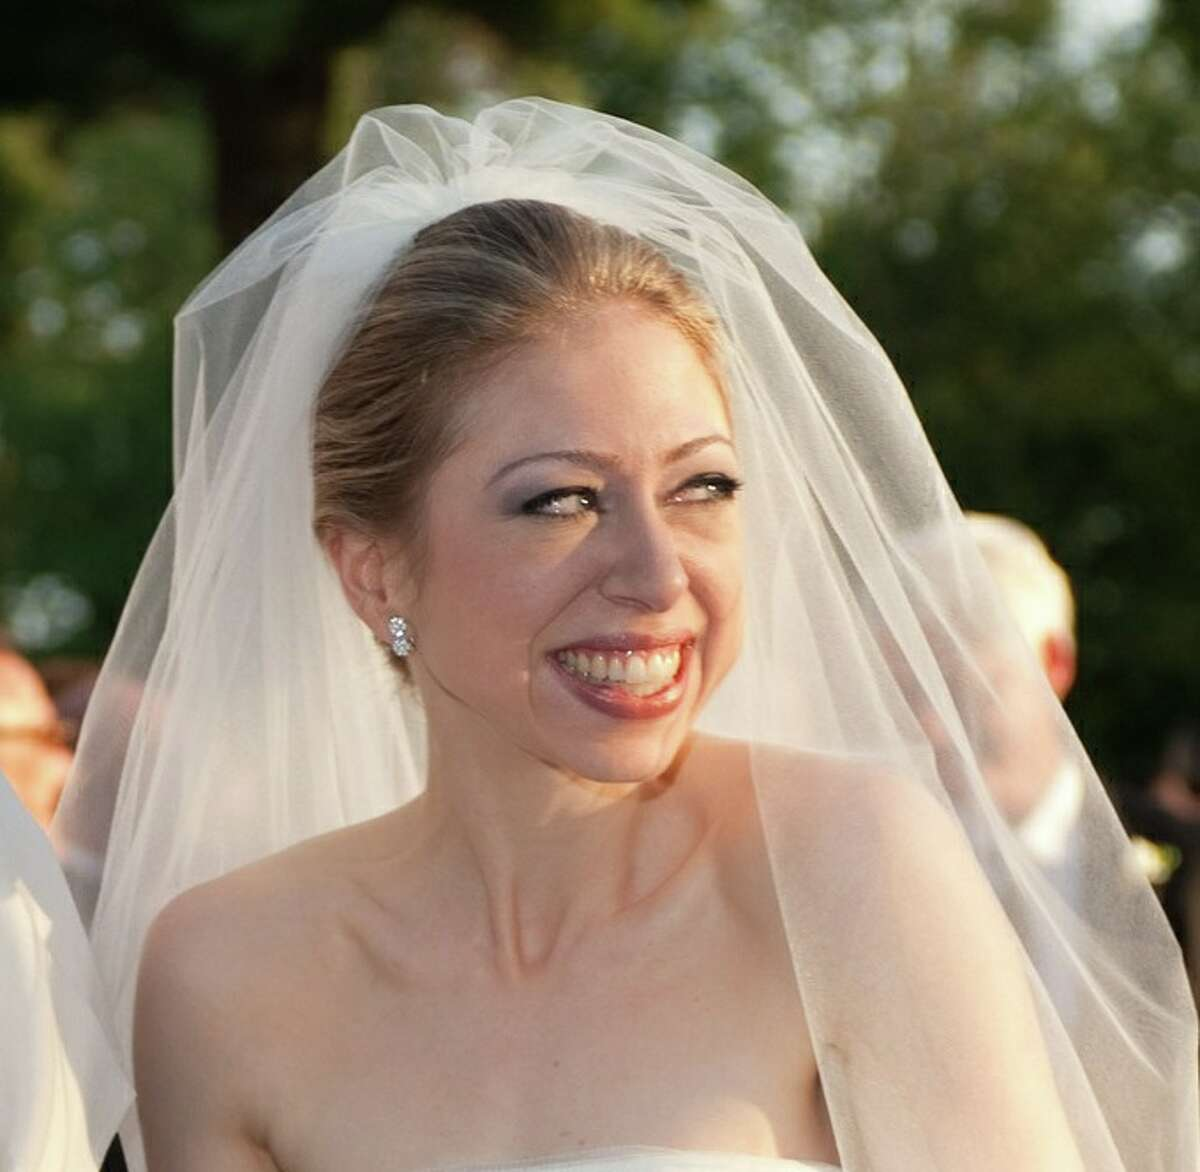 Chelsea Clinton, daughter of former US president Bill Clinton, is pictured during her marriage ceremony with Marc Mezvinsky on July 31, 2010 in Rhinebeck, New Yotk. Chelsea Clinton married her longtime boyfriend Marc Mezvinsky, ending weeks of secretive build-up about the former first daughter's wedding.